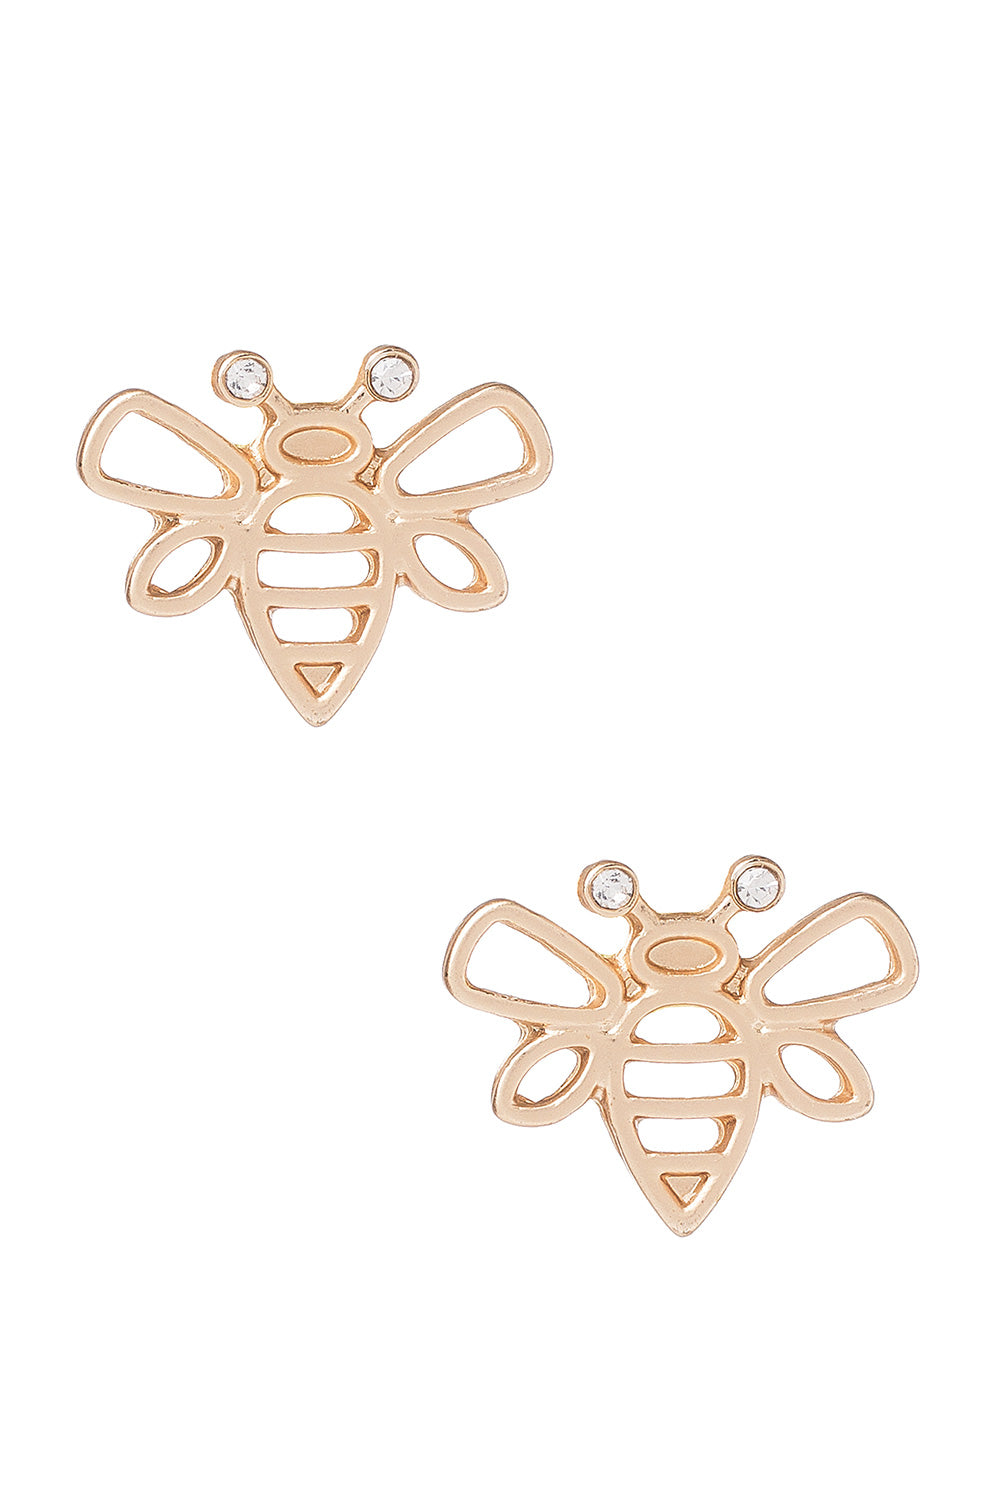 Type 1 Lets Bee Friends Earring